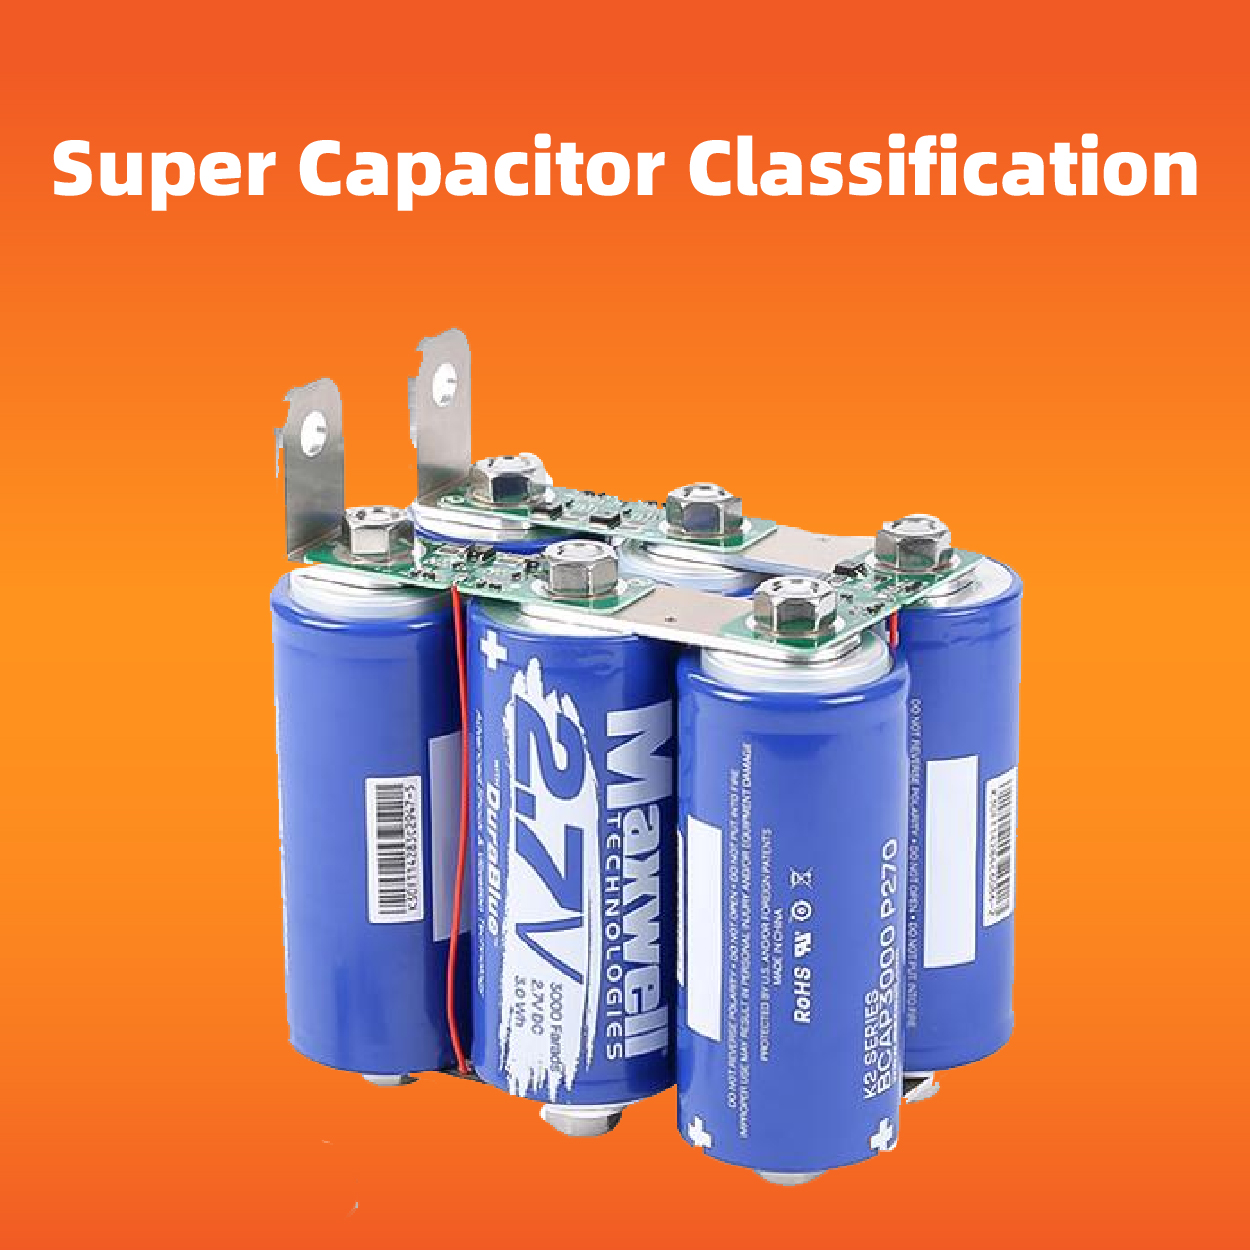 Super Capacitor Applications